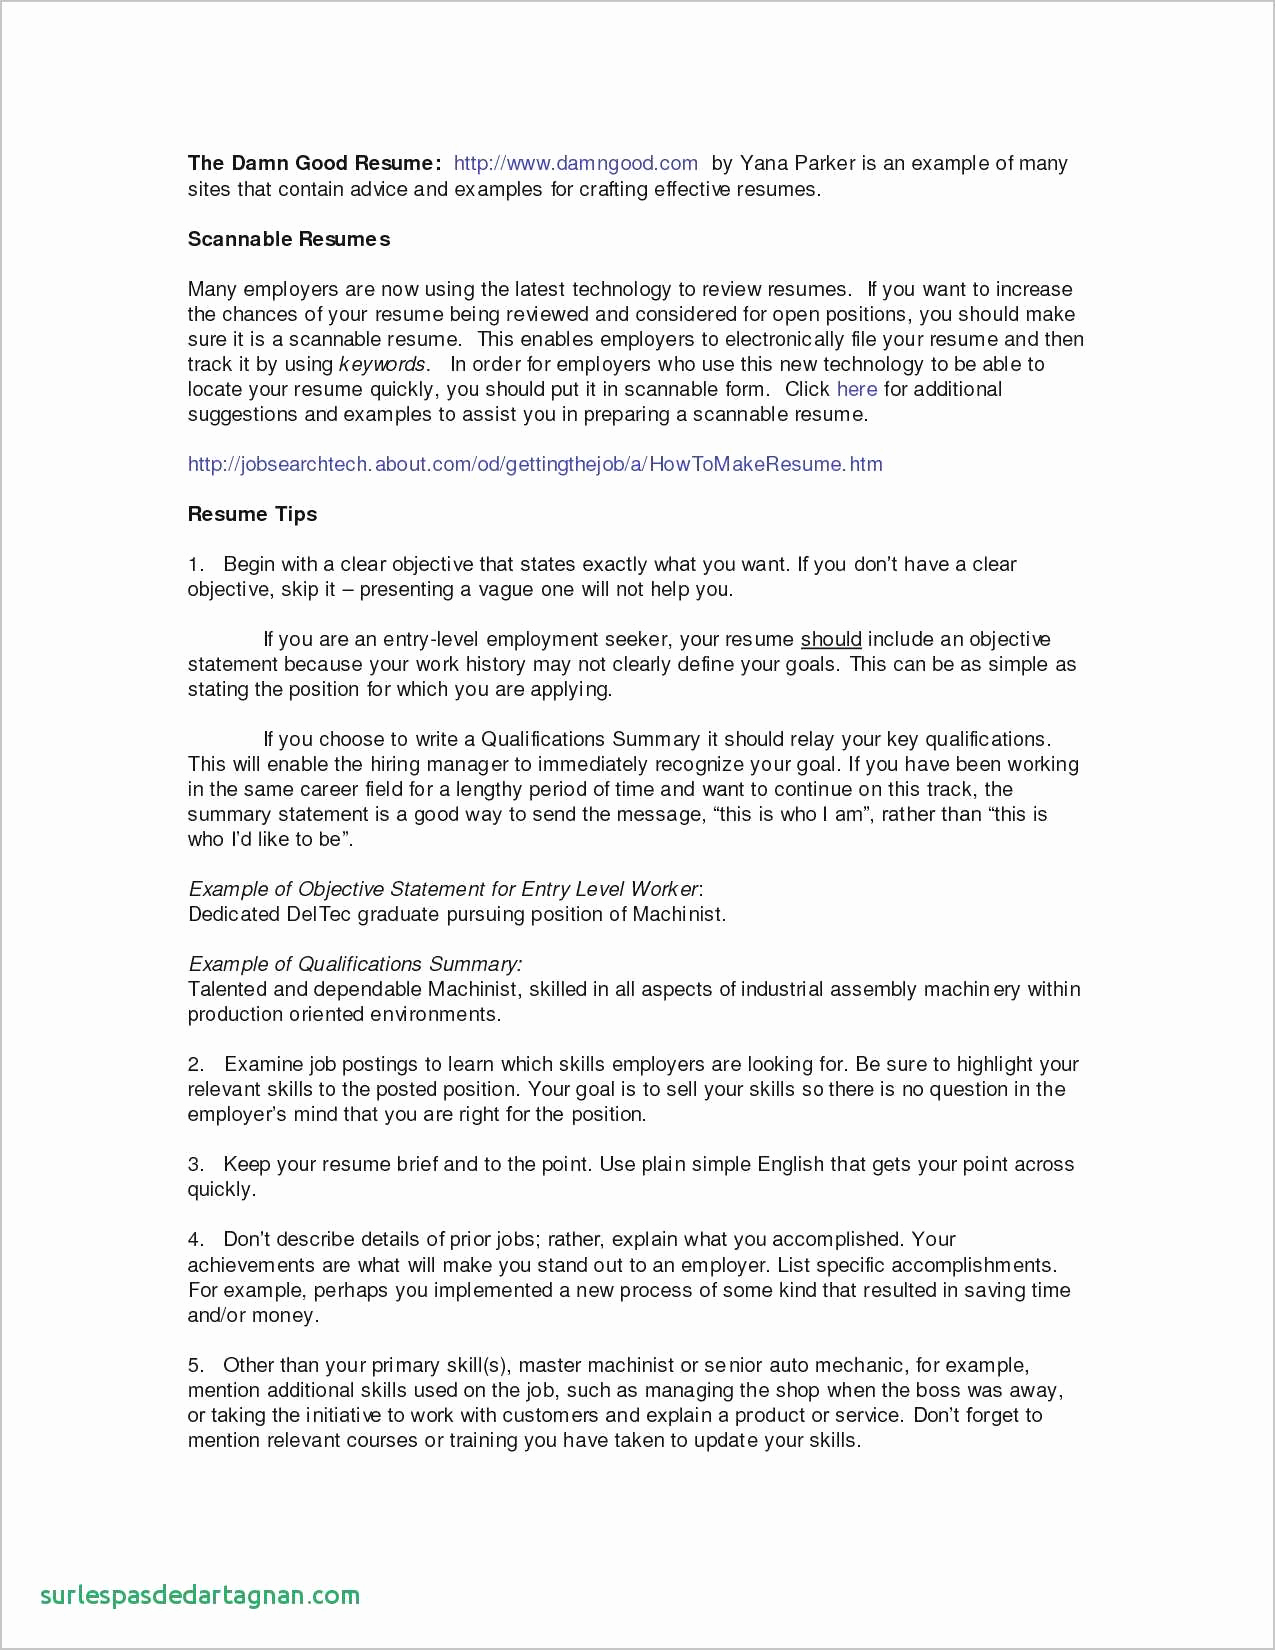 Kinkos Resume Writing Services - What Makes A Resume Stand Out Beautiful How to Make Resume for Job